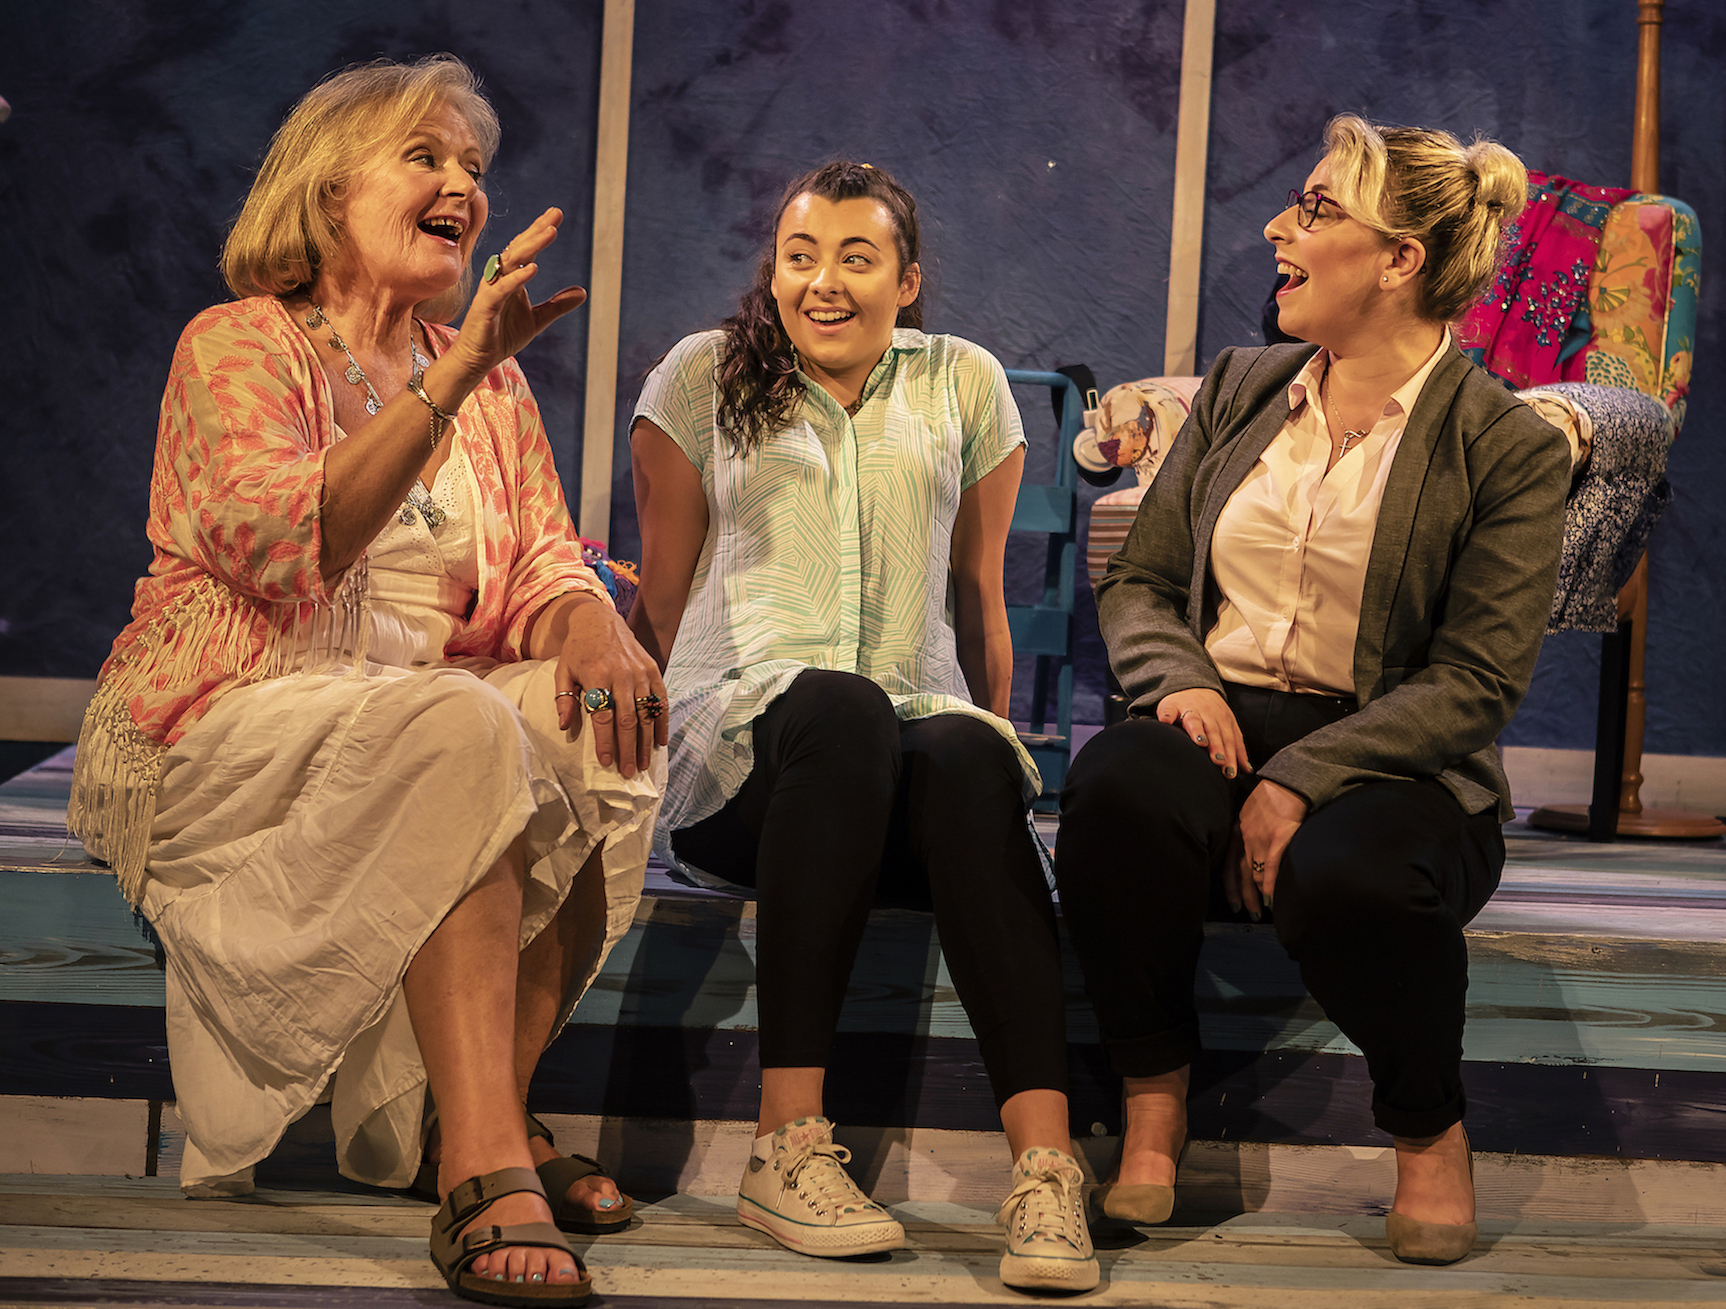 L-R Janet Fullerlove (Joy), Kelly Sweeney (Tamara) & Jodie Jacobs (Rachel) - Unexpected Joy at Southwark Parkhouse (c) Pamela Raith Photography_006